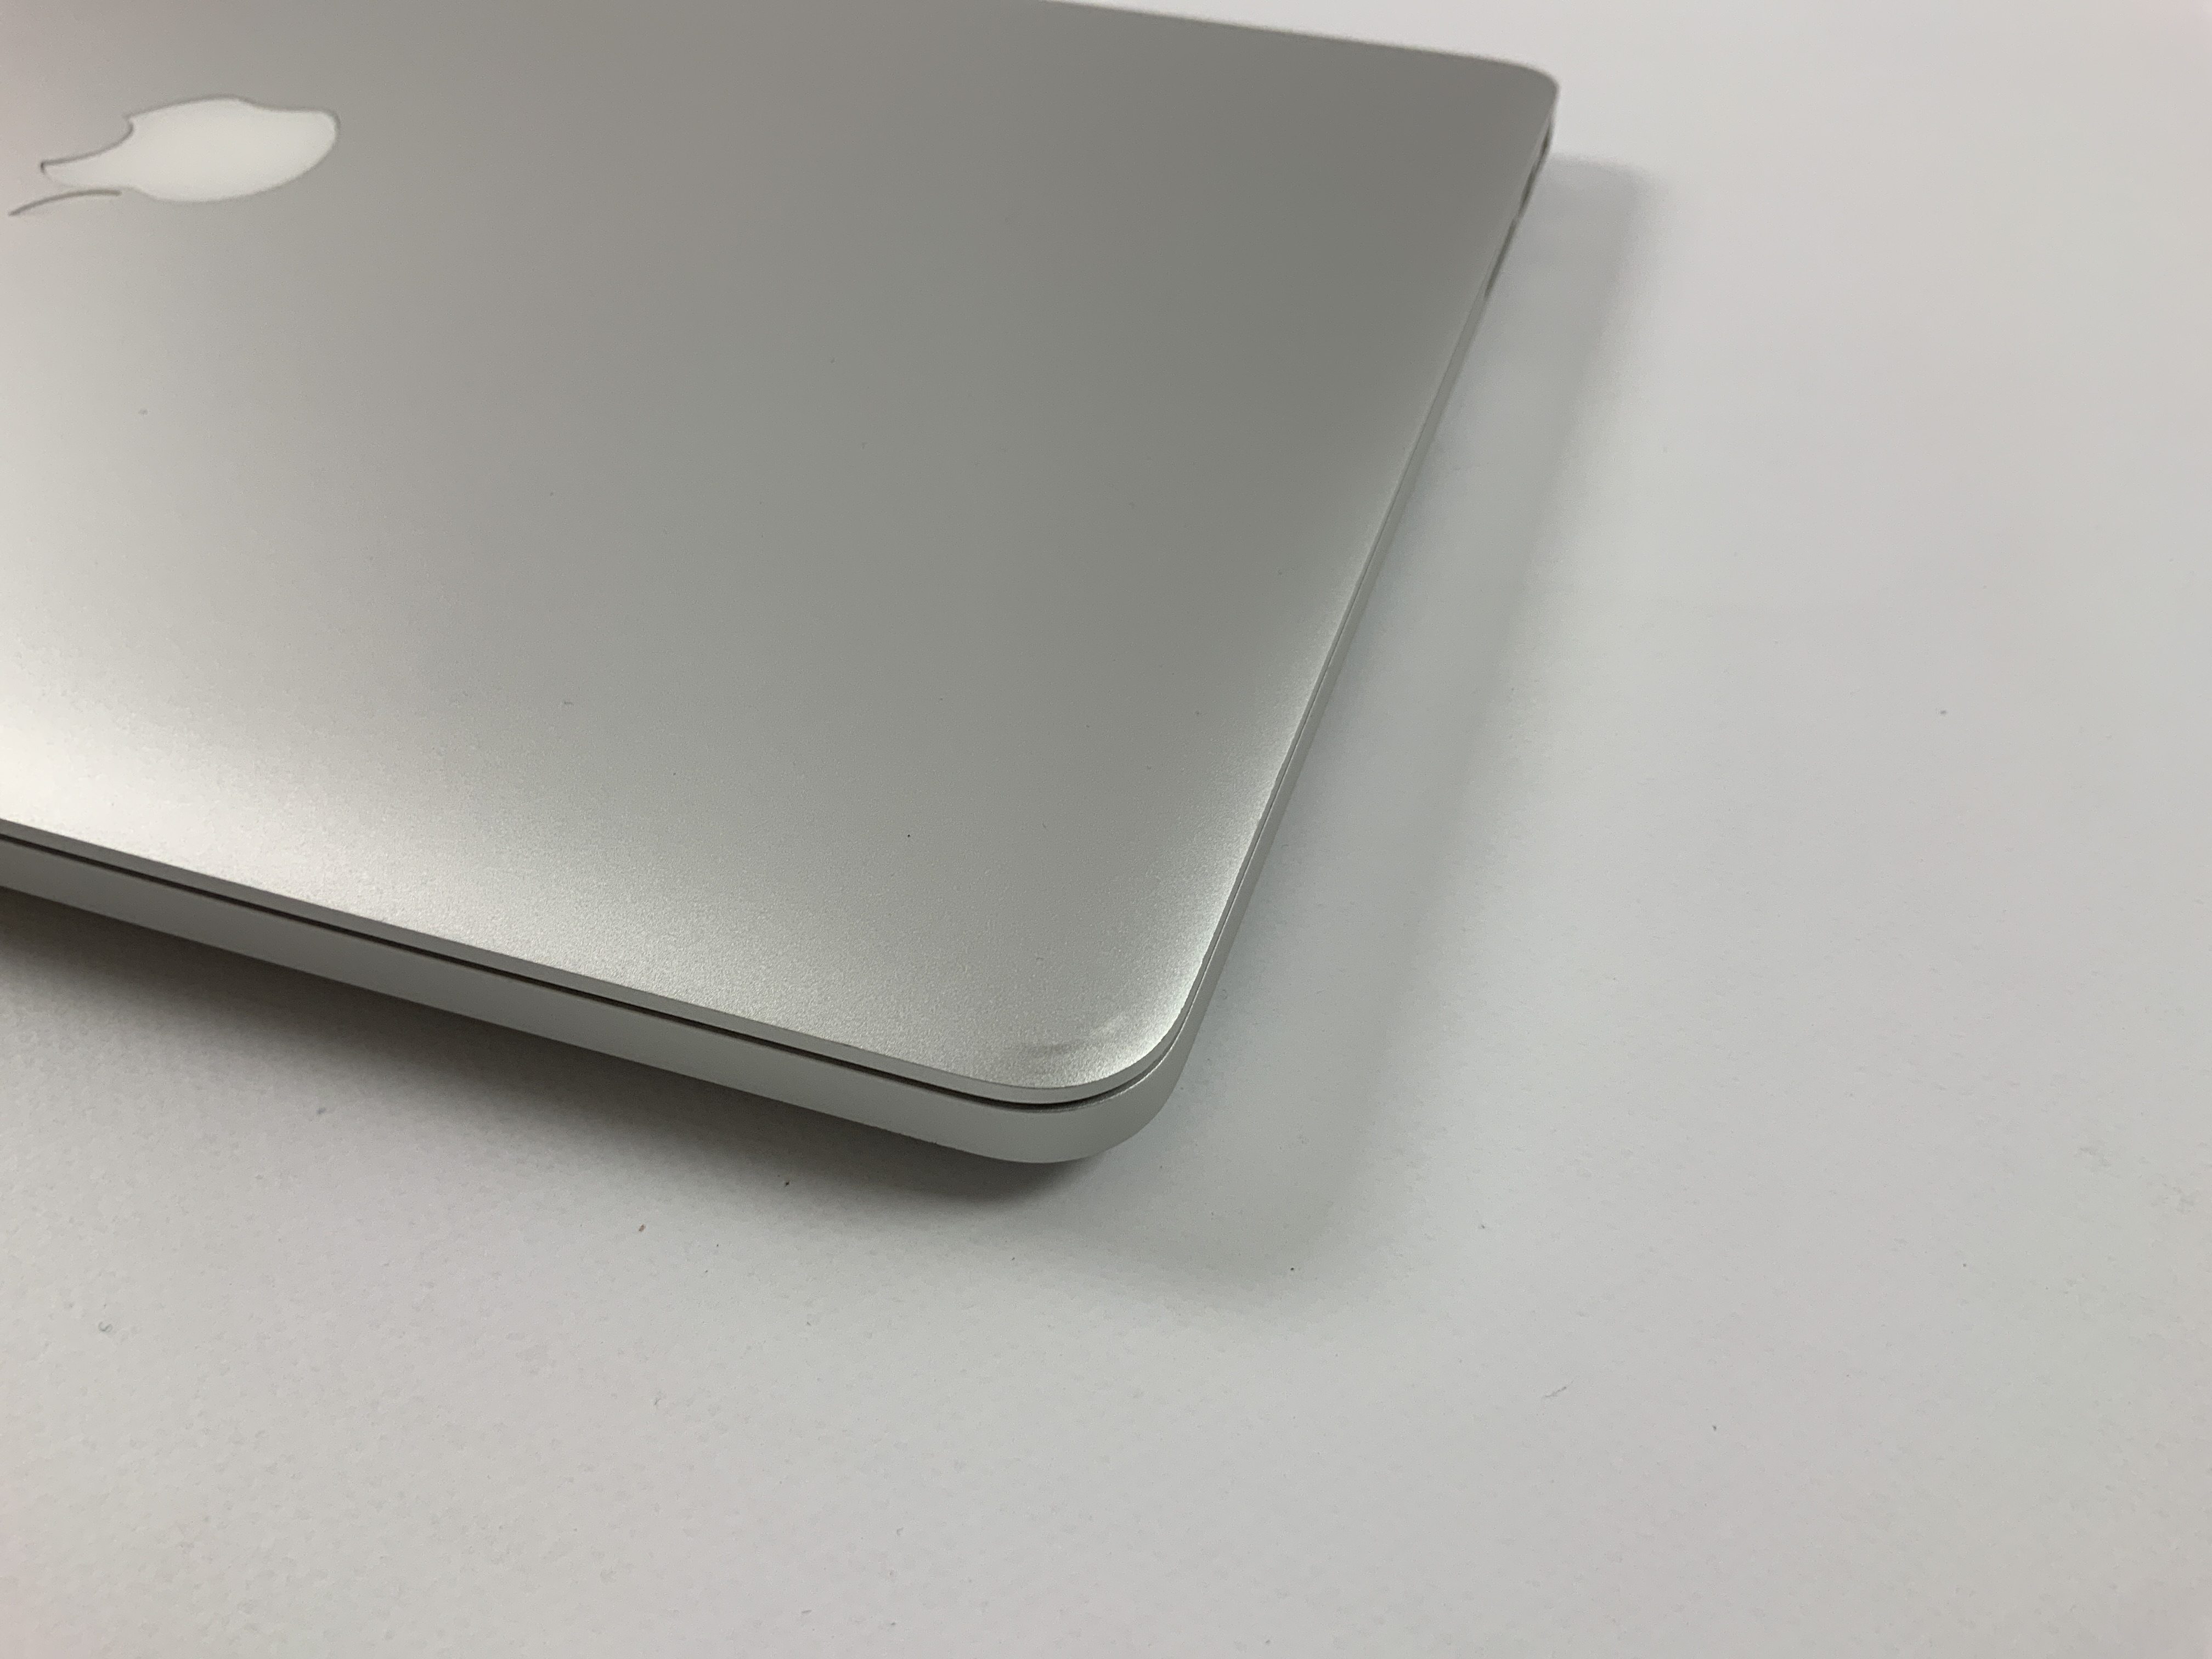 "MacBook Pro Retina 15"" Mid 2015 (Intel Quad-Core i7 2.2 GHz 16 GB RAM 256 GB SSD), Intel Quad-Core i7 2.2 GHz, 16 GB RAM, 256 GB SSD, obraz 3"